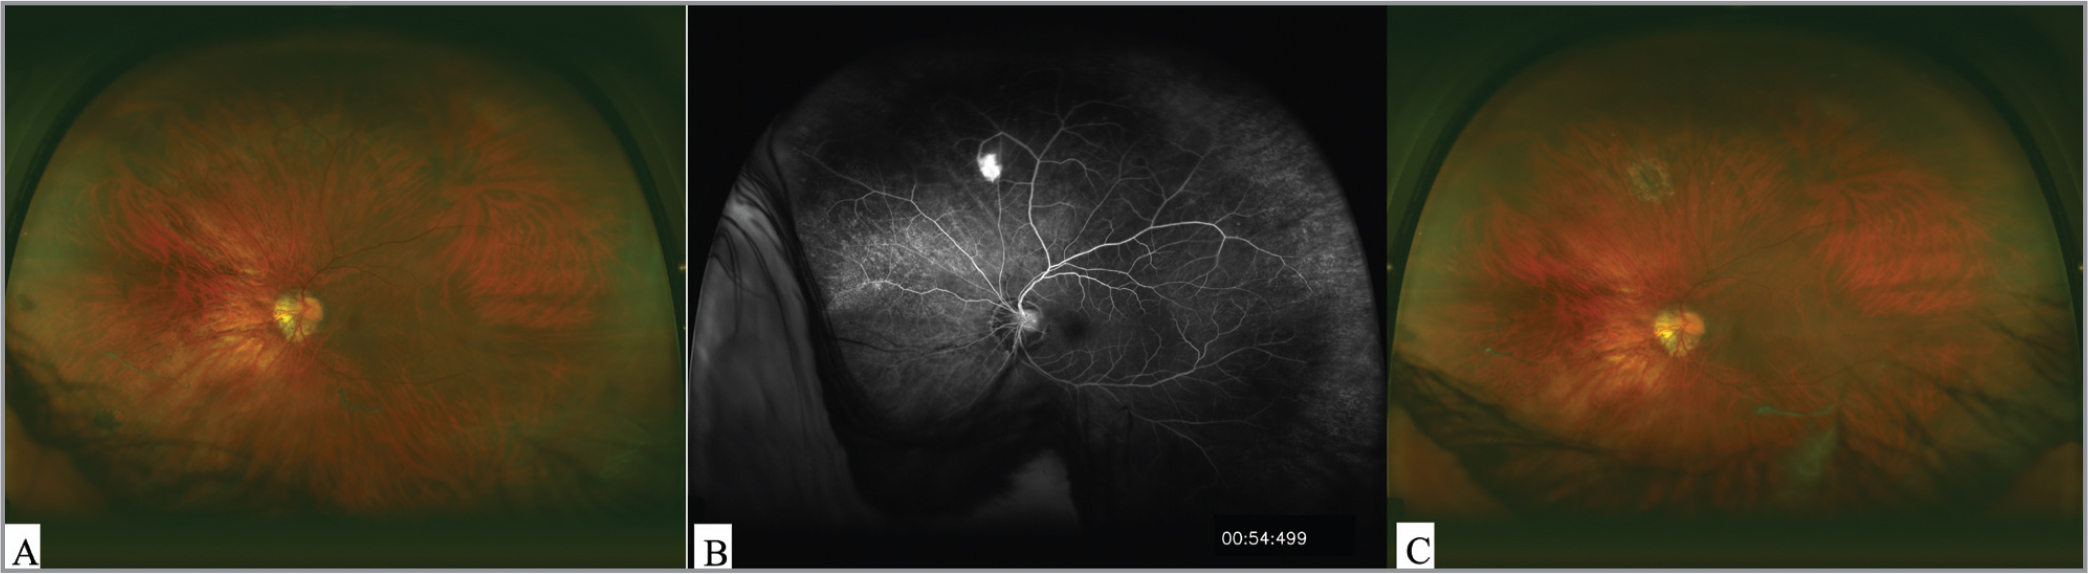 Retinal hemangioblastoma missed on widefield fundus photo (A) but readily visible on widefield fluorescein angiogram (B), allowing early laser photocoagulation treatment (C).